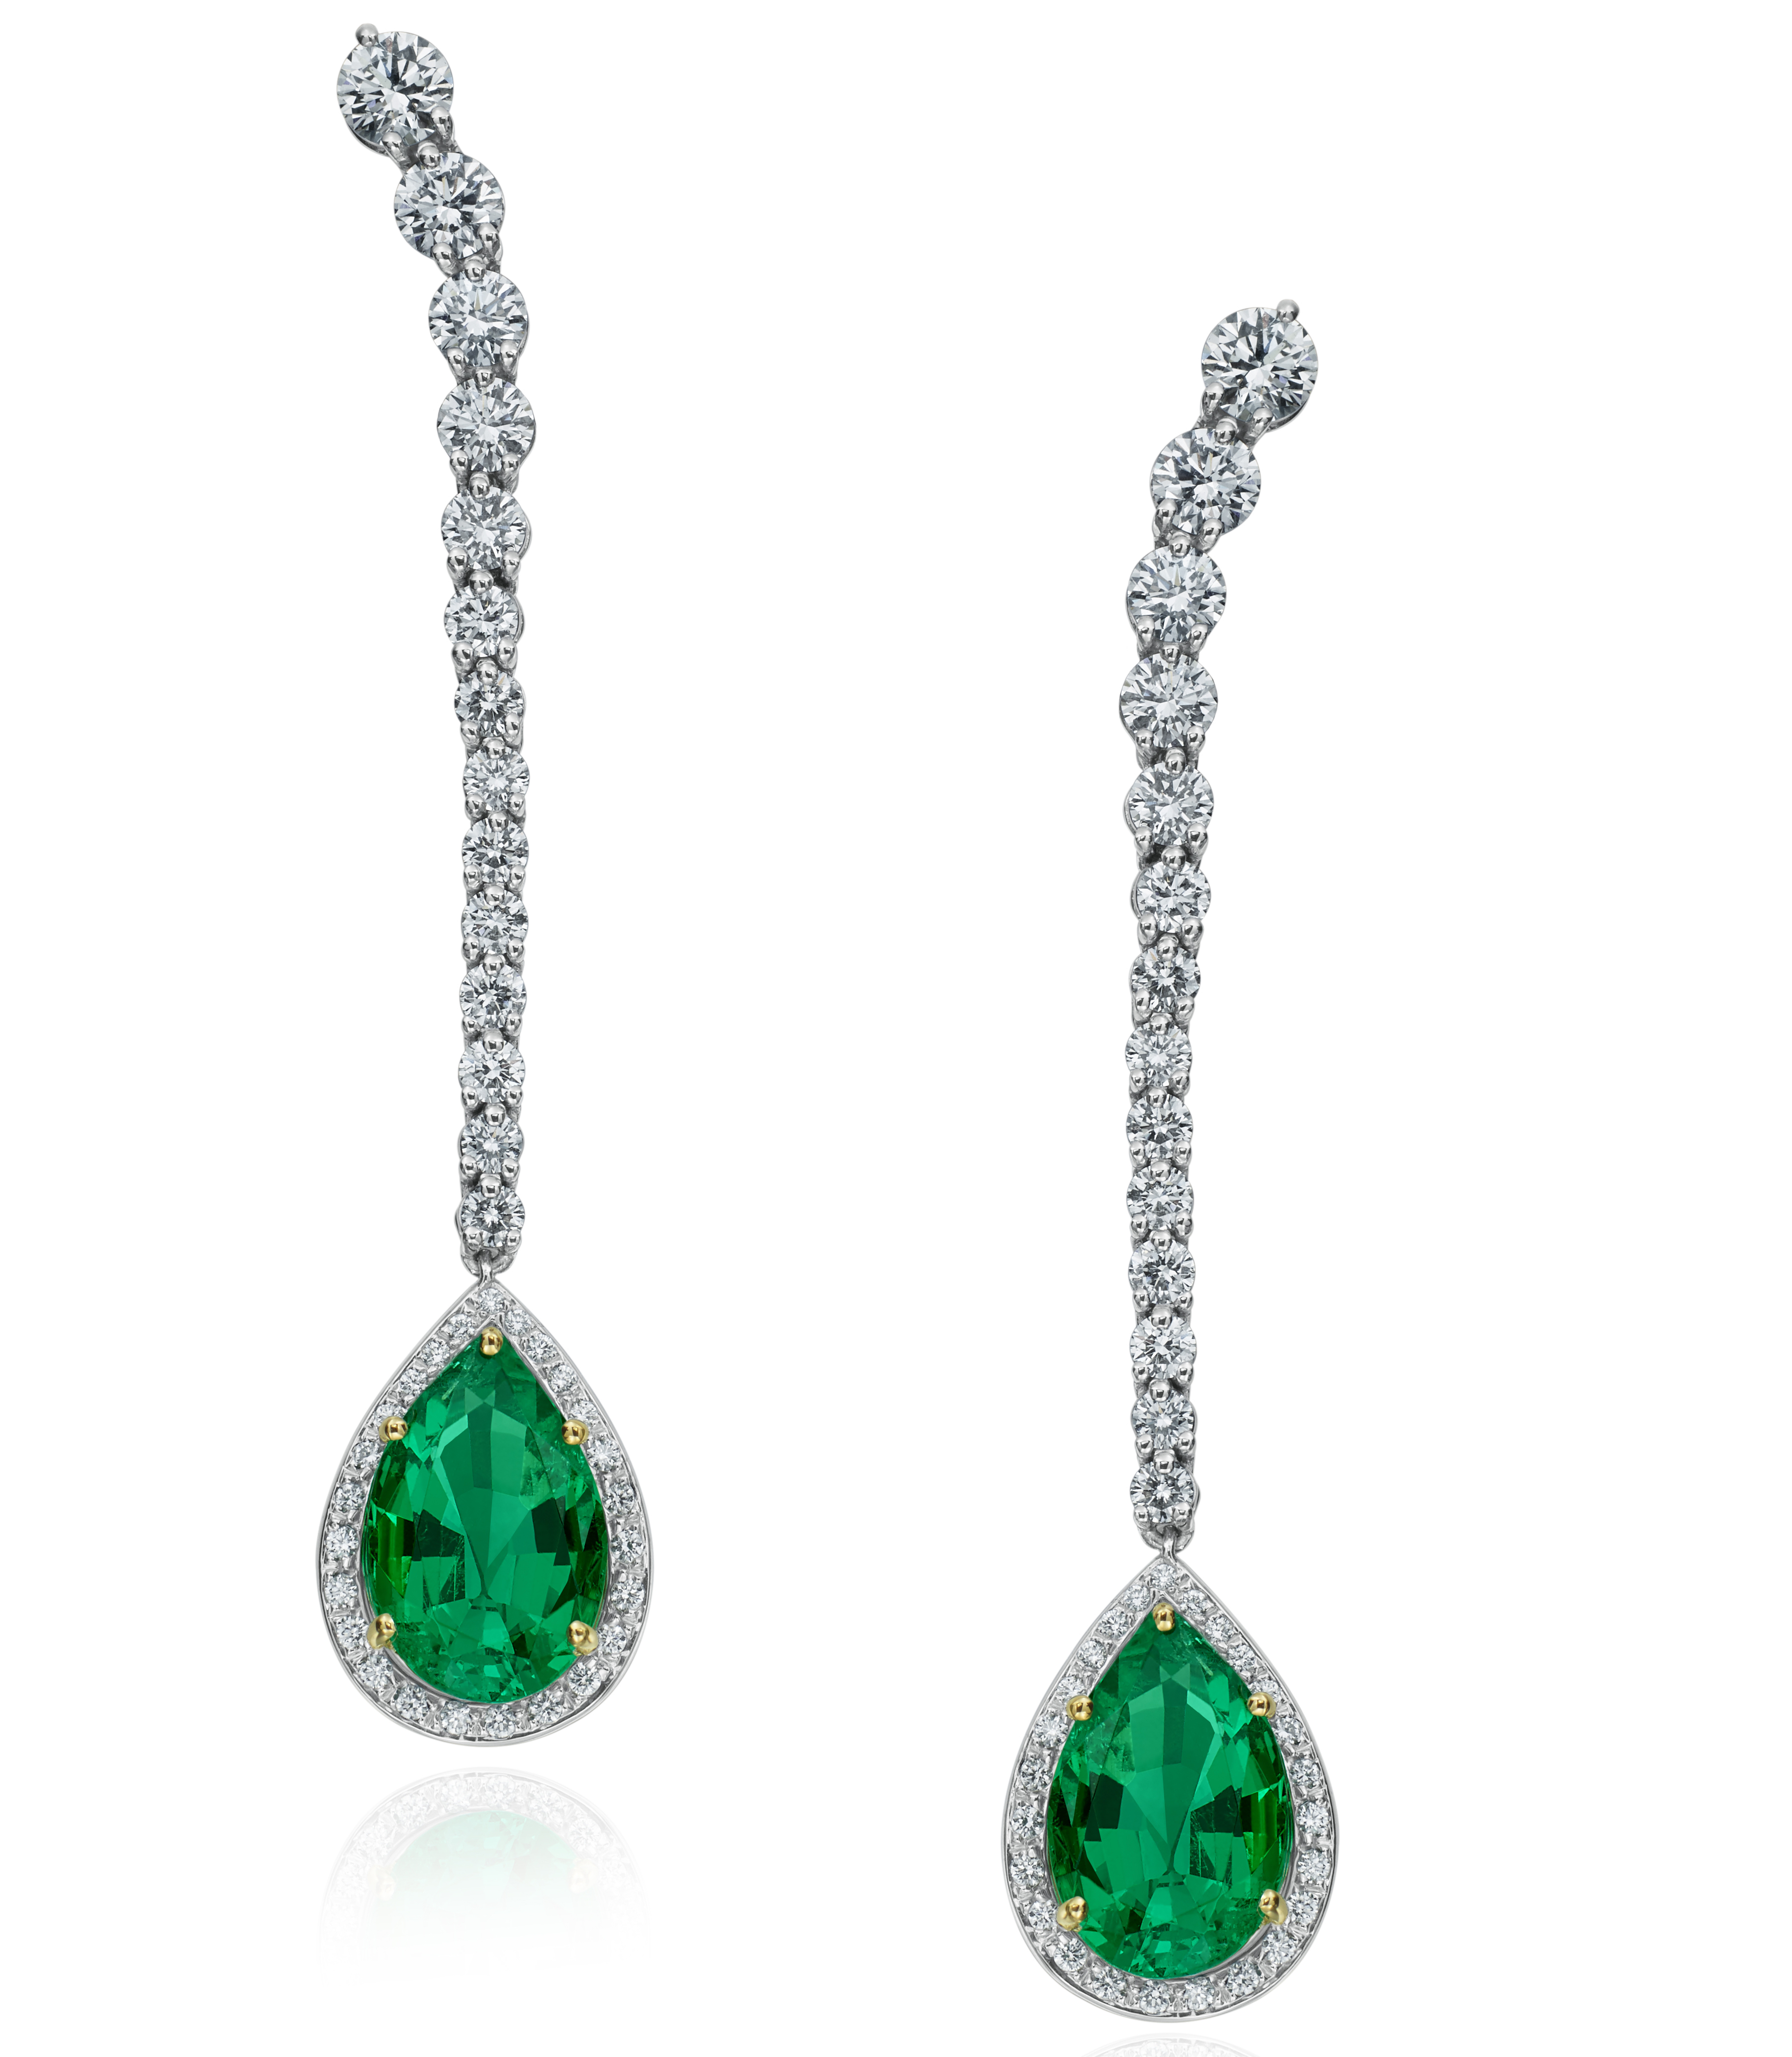 Gumuchian emerald and diamond Riviera earrings | JCK On Your Market